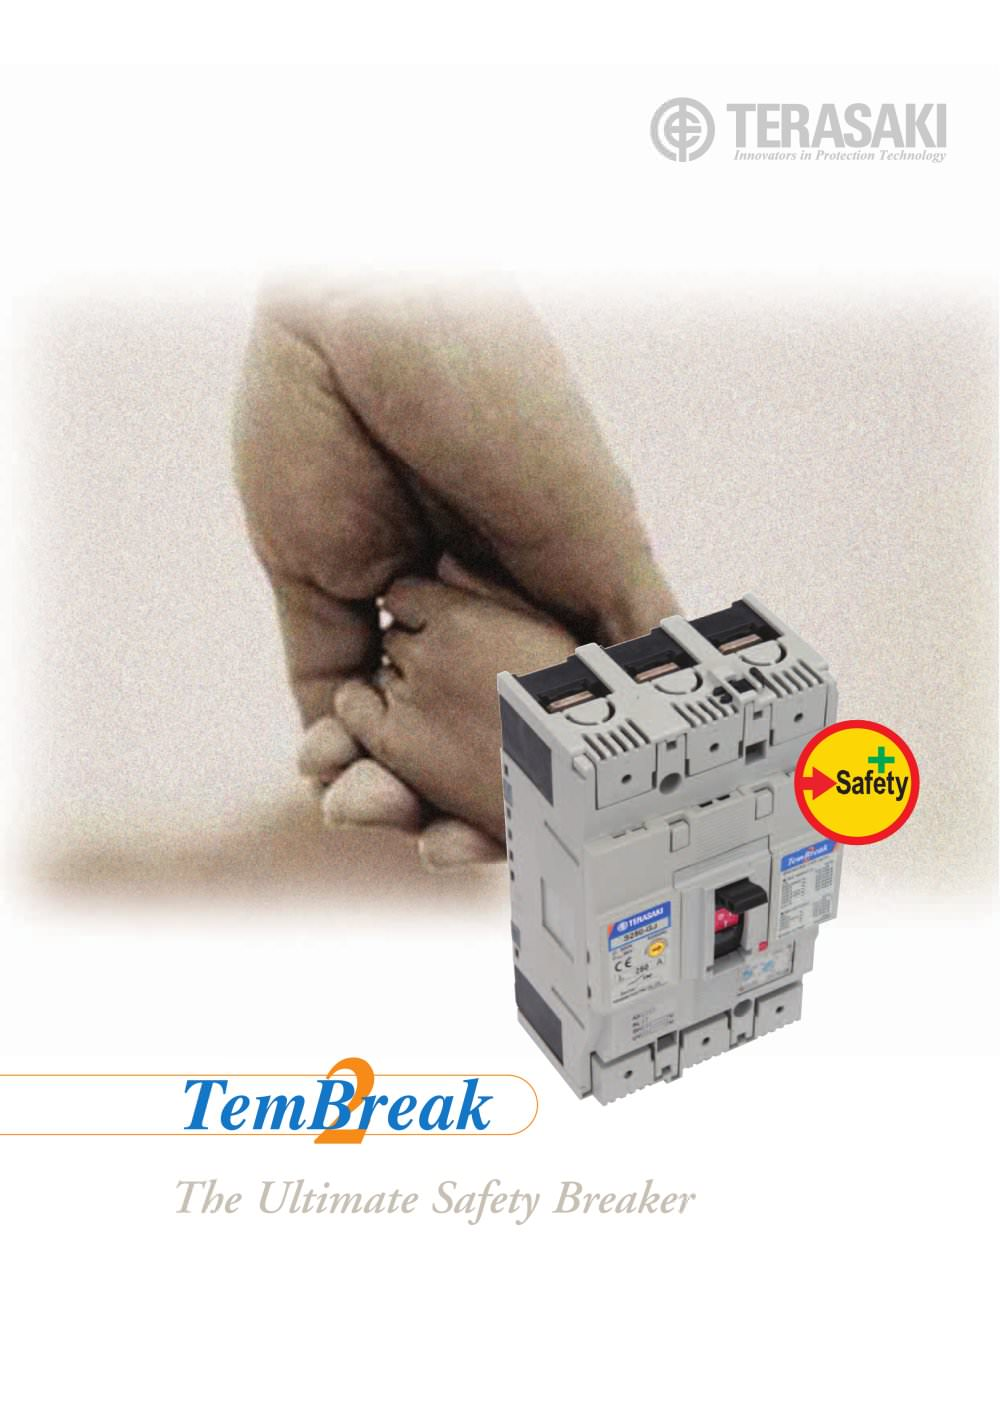 Tembreak 2 Terasaki Electric Circuit Breaker Pdf Catalogue Breakers For Sale Dc Electronic 1 204 Pages